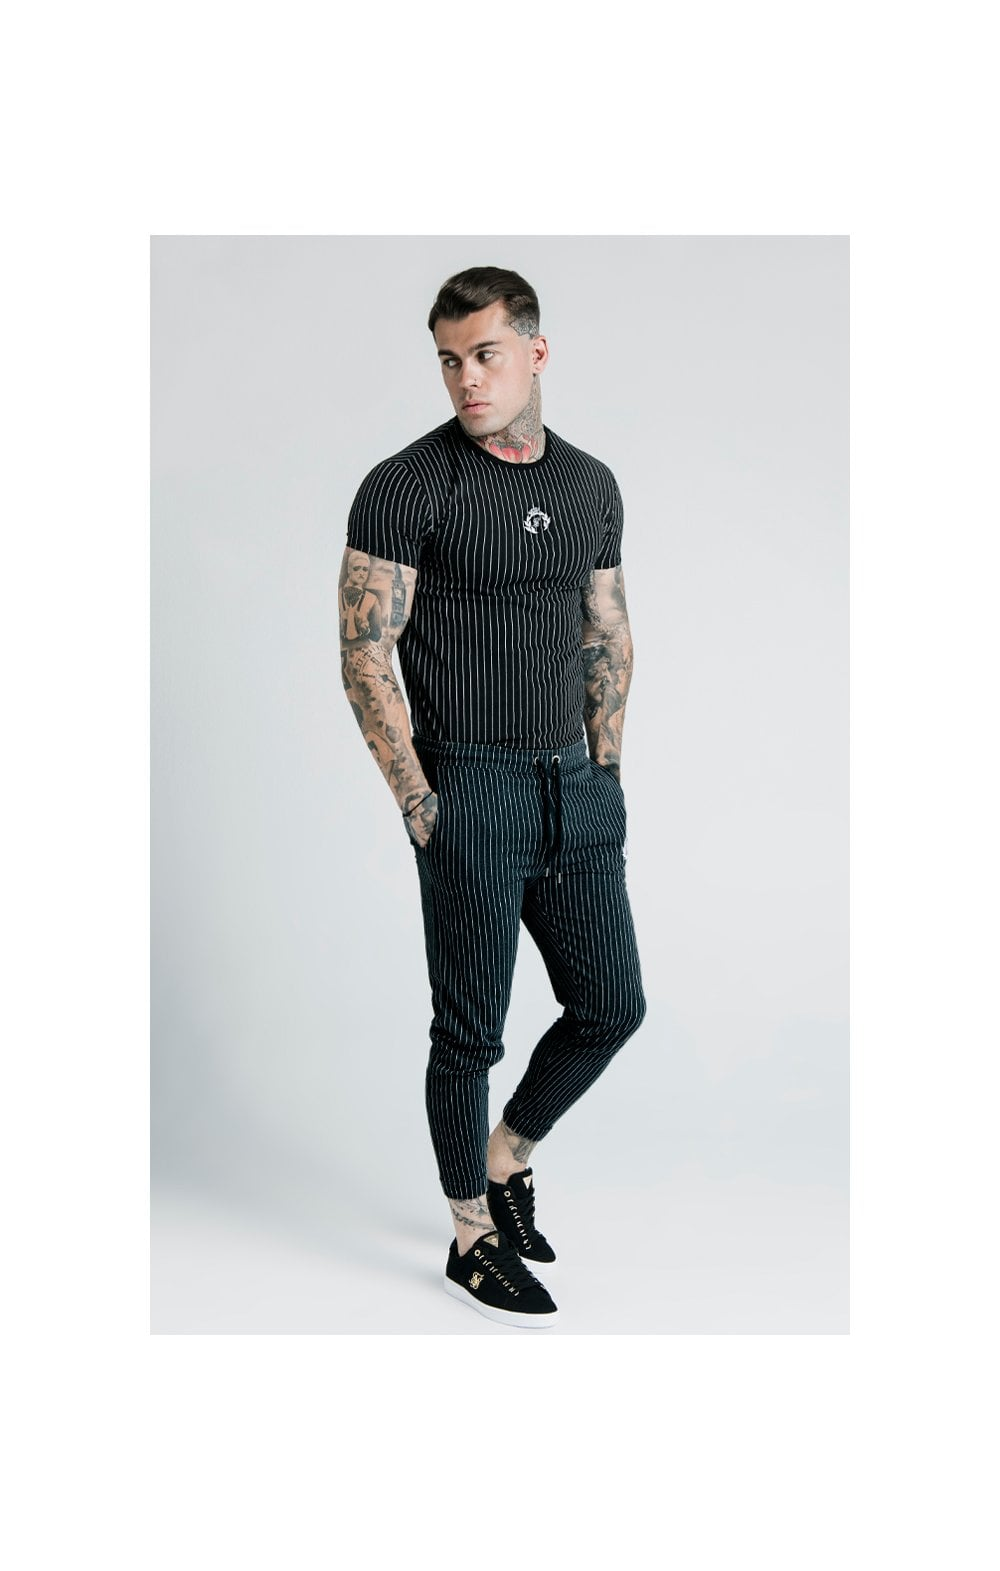 SikSilk x Dani Alves Curved Hem Gym Tee – Black & White (6)